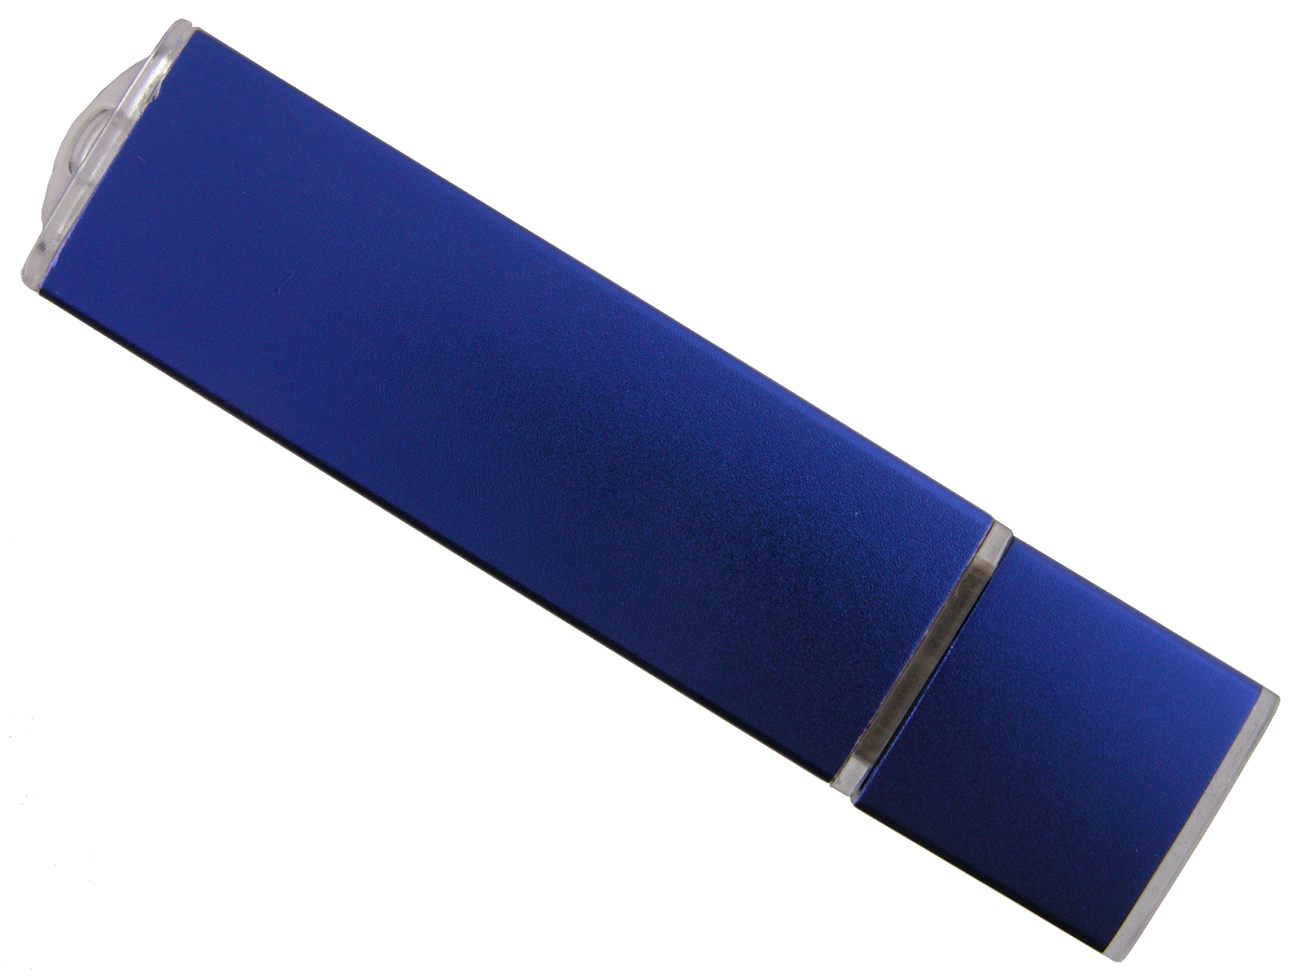 Usb Stick Blue Metal Clad Cd143